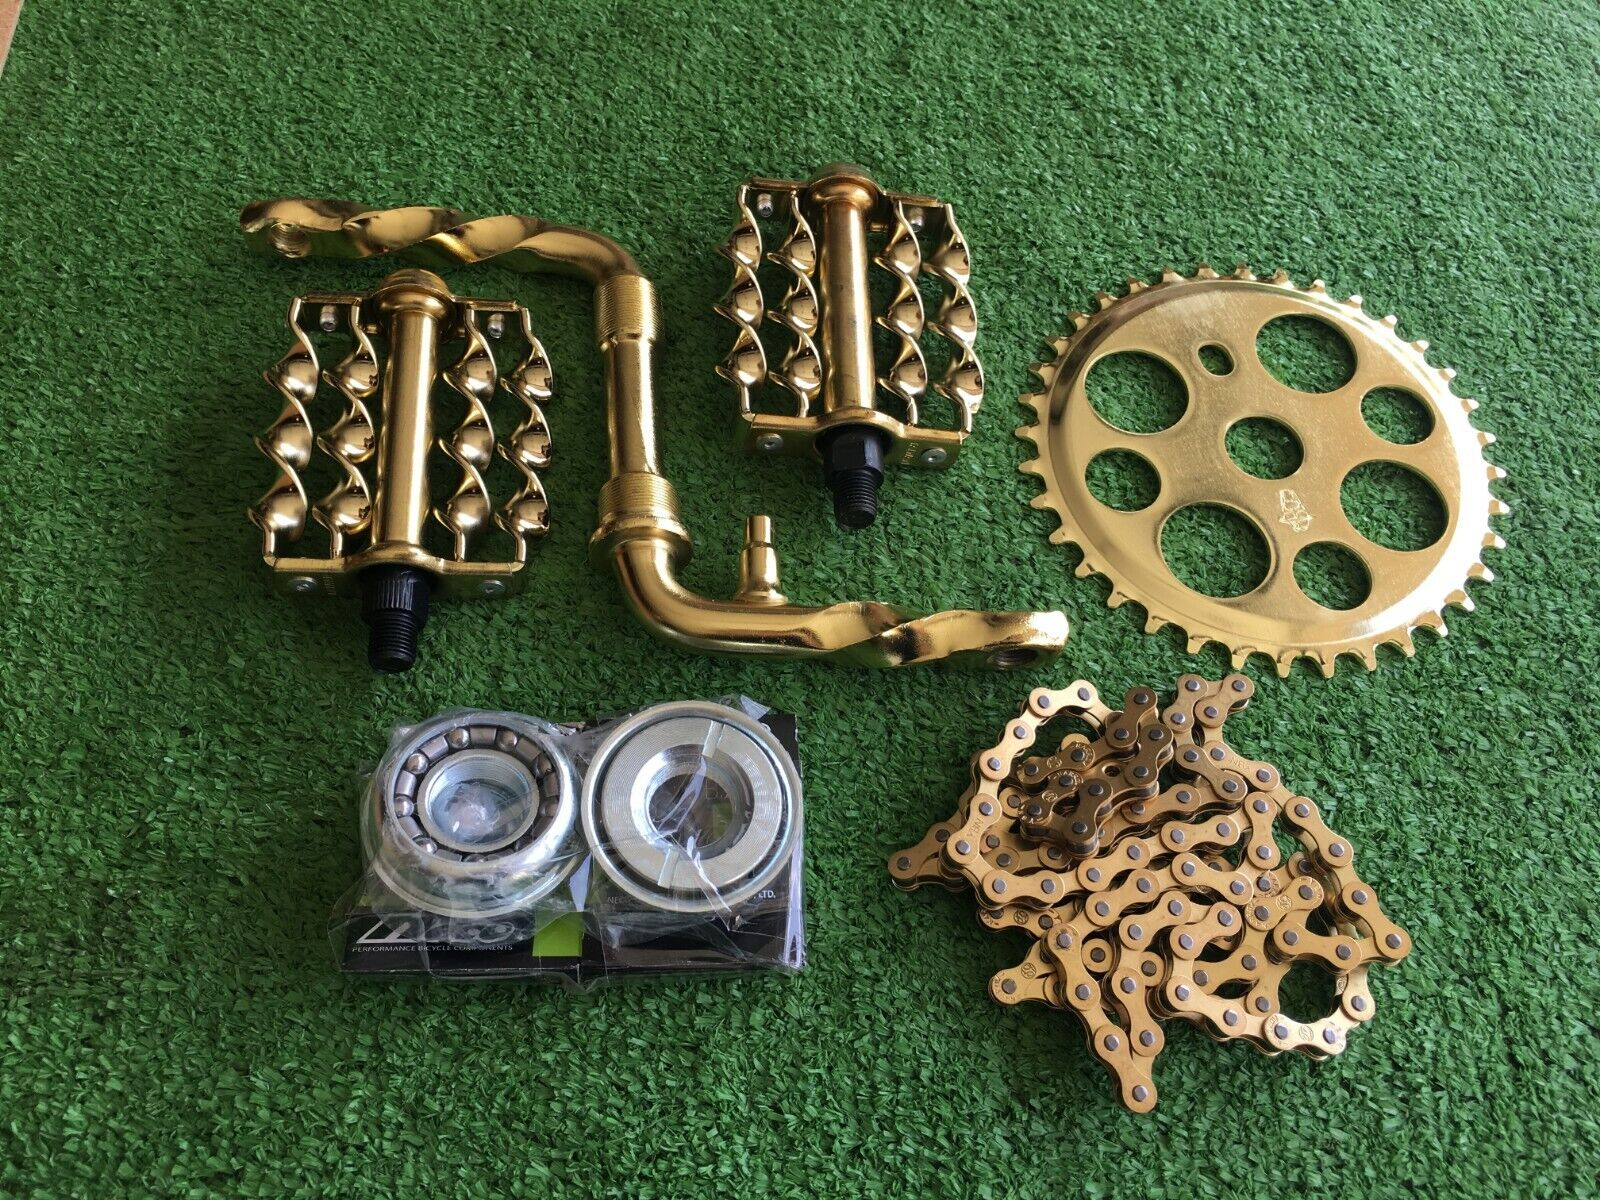 BIKE LOW RIDER 5  gold  ITEMS  TWISTED 4 1 2   CRANK, PEDALS, CHAIN, 36T SPRKT,  official quality